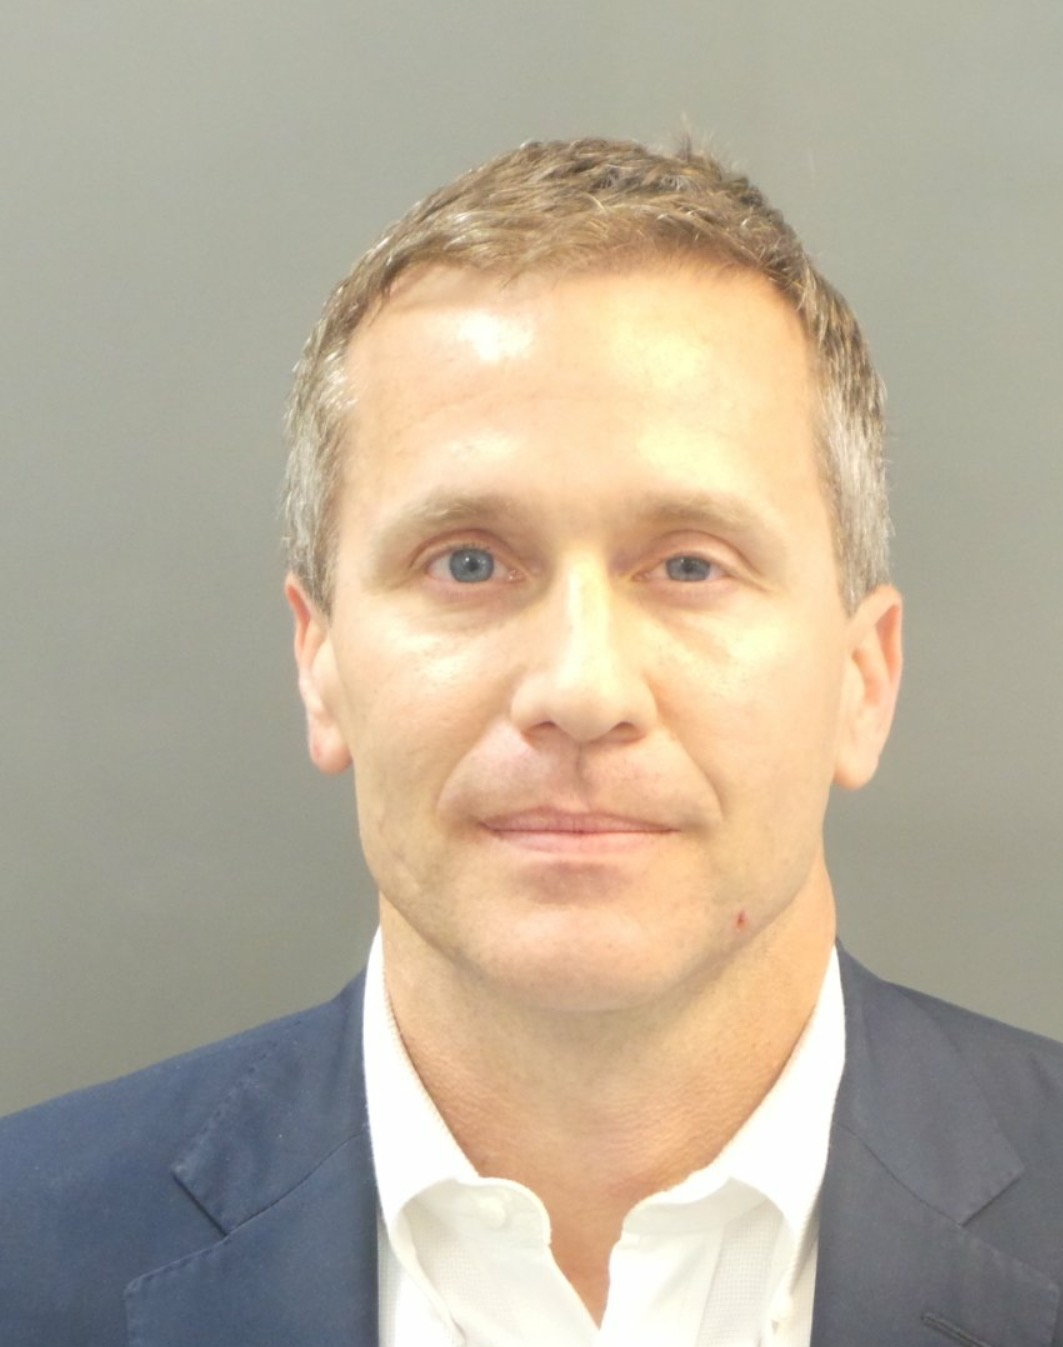 Judge issues partial gag rule in Missouri Gov. Greitens case